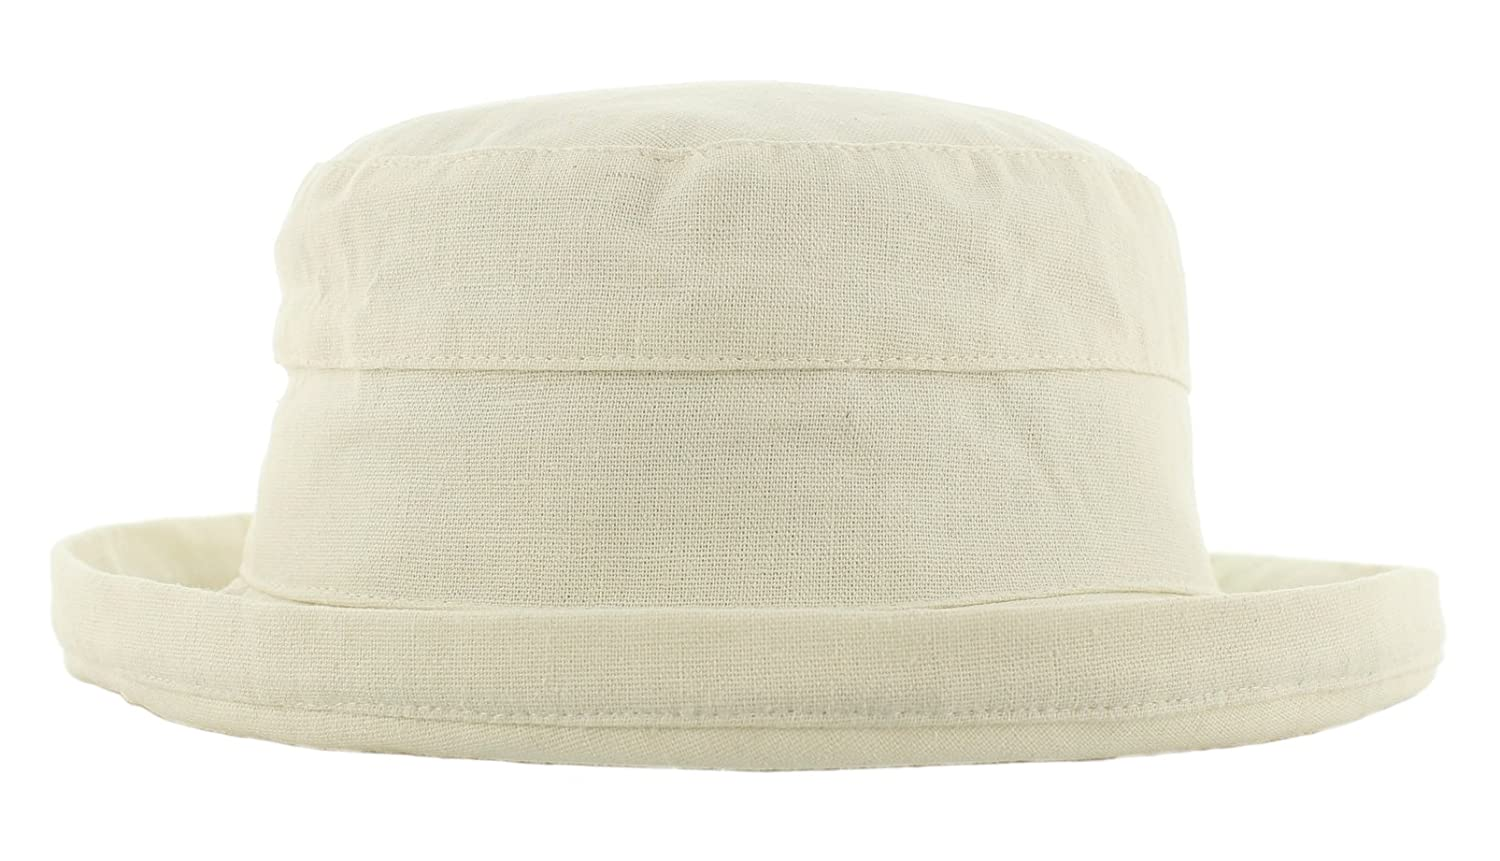 12fd1ee6134 The Hat Company Ladies Sun Hat A102A (White)  Amazon.co.uk  Clothing